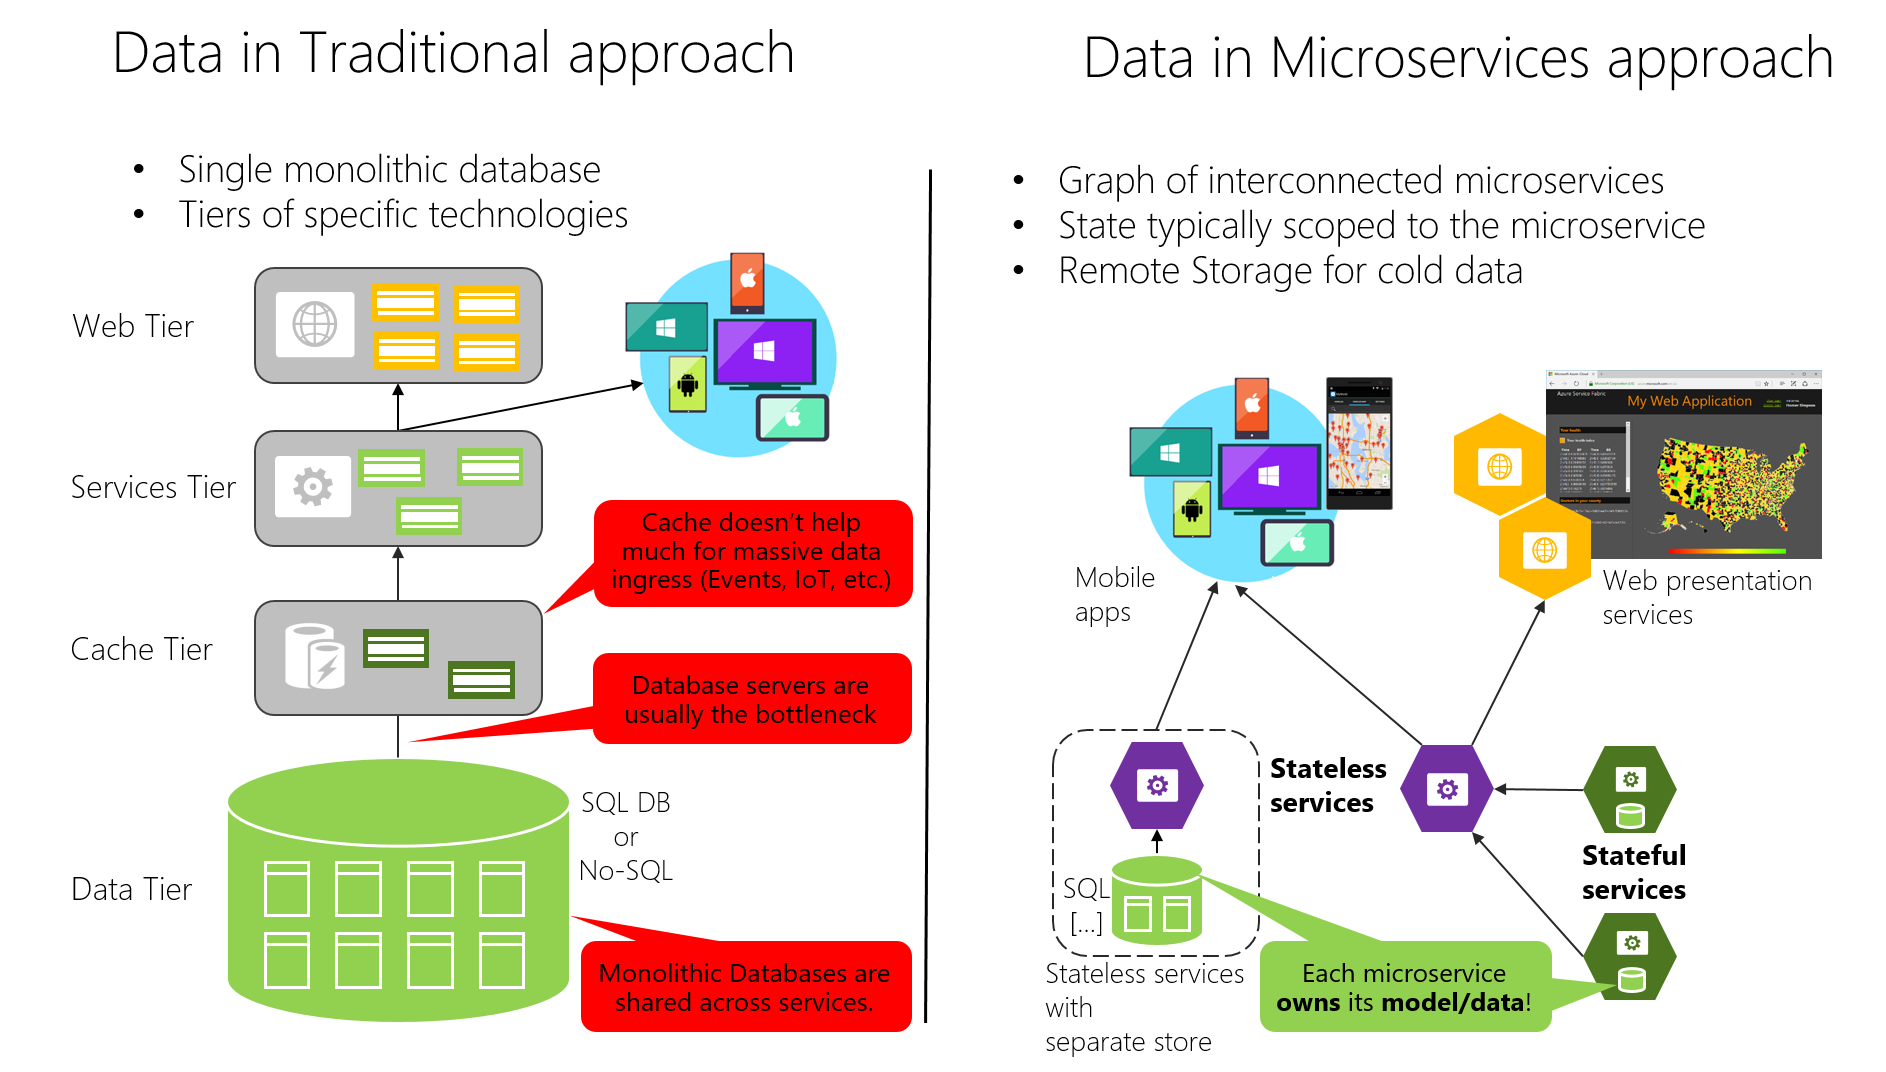 Soberania de dados por microsservio microsoft docs this is often a normalized sql database that is used for the whole application and all its internal subsystems as shown in figure 4 7 ccuart Image collections